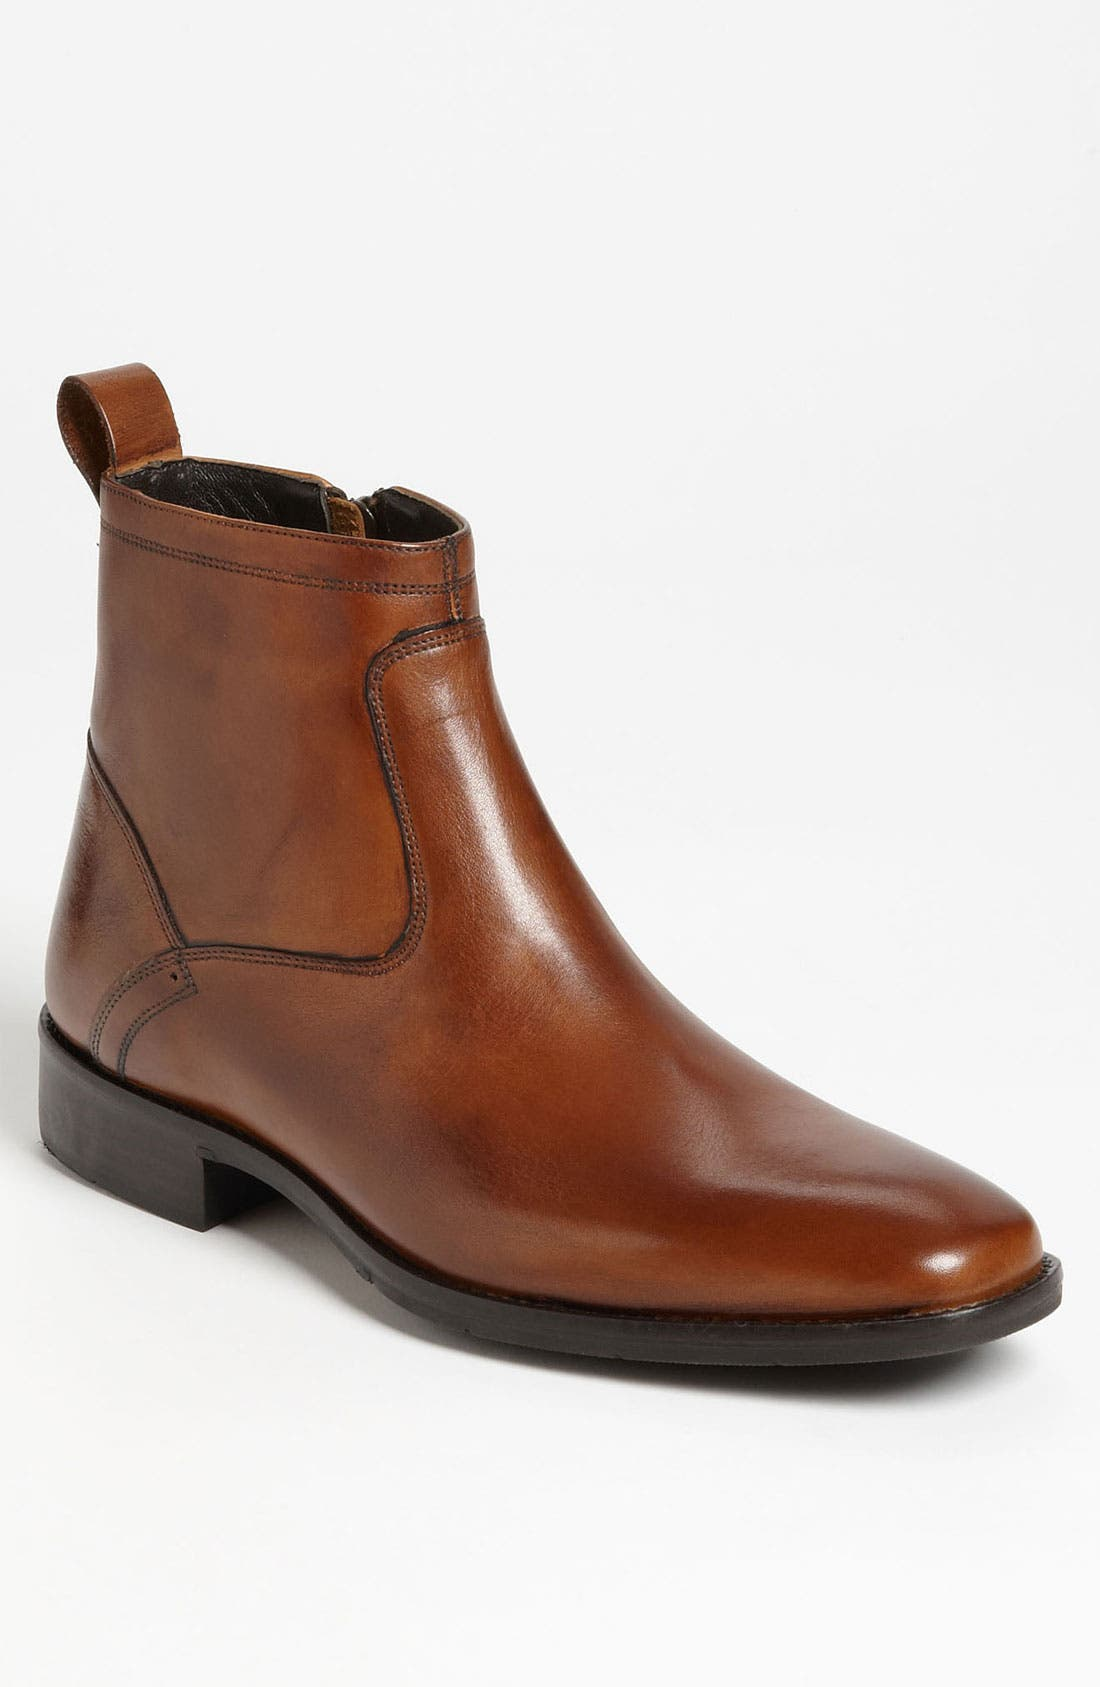 Alternate Image 1 Selected - Johnston & Murphy 'Larsey' Plain Toe Boot (Men)